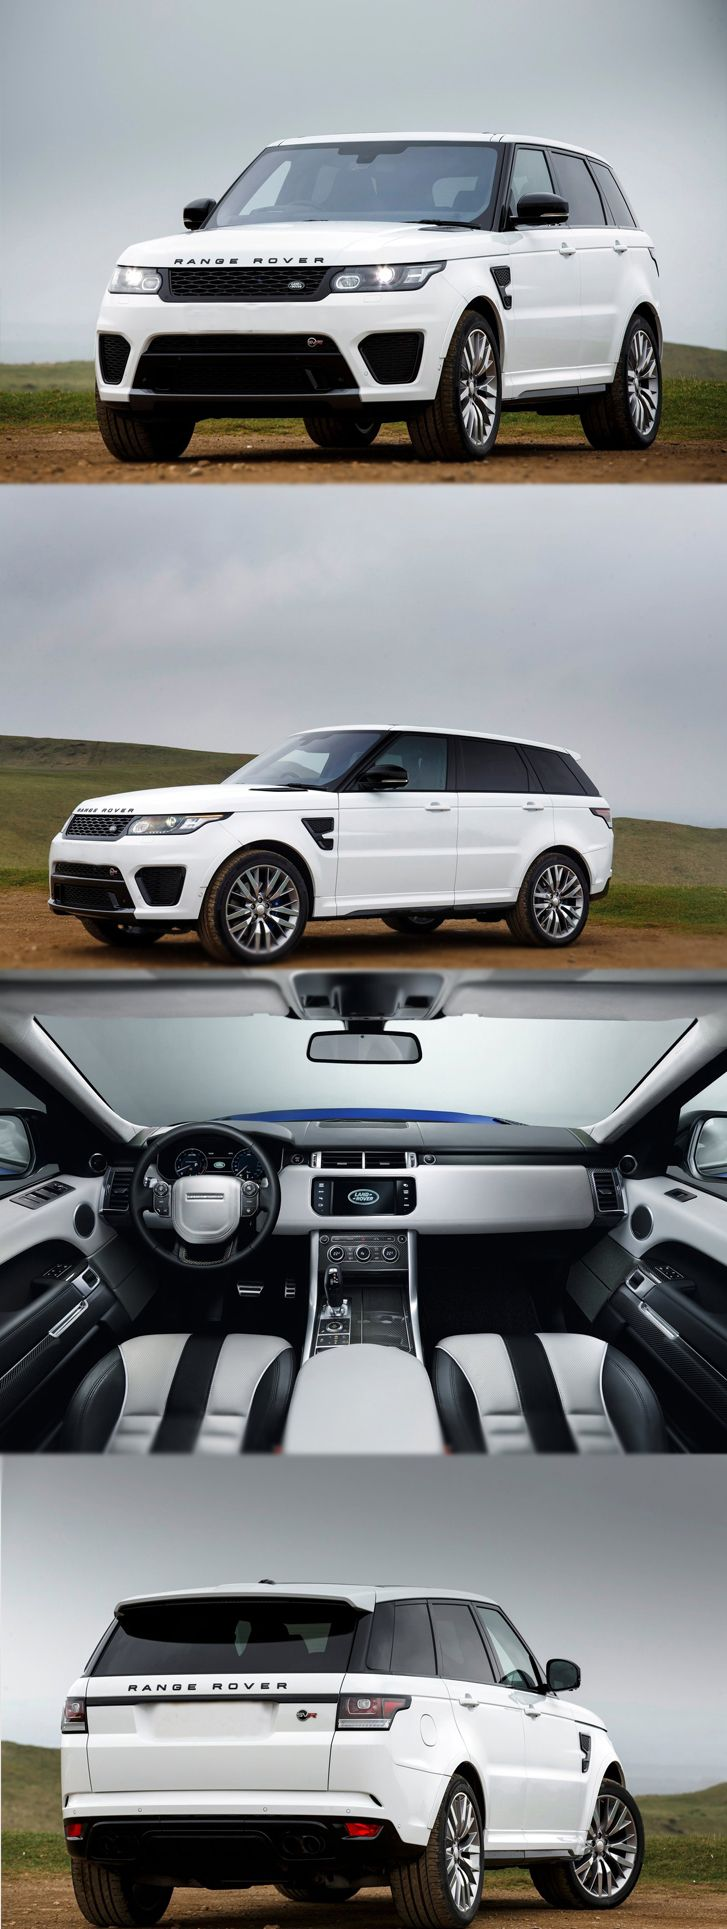 Range rover sport svr the fastest land rover ever 5 0 liter supercharged v8 that